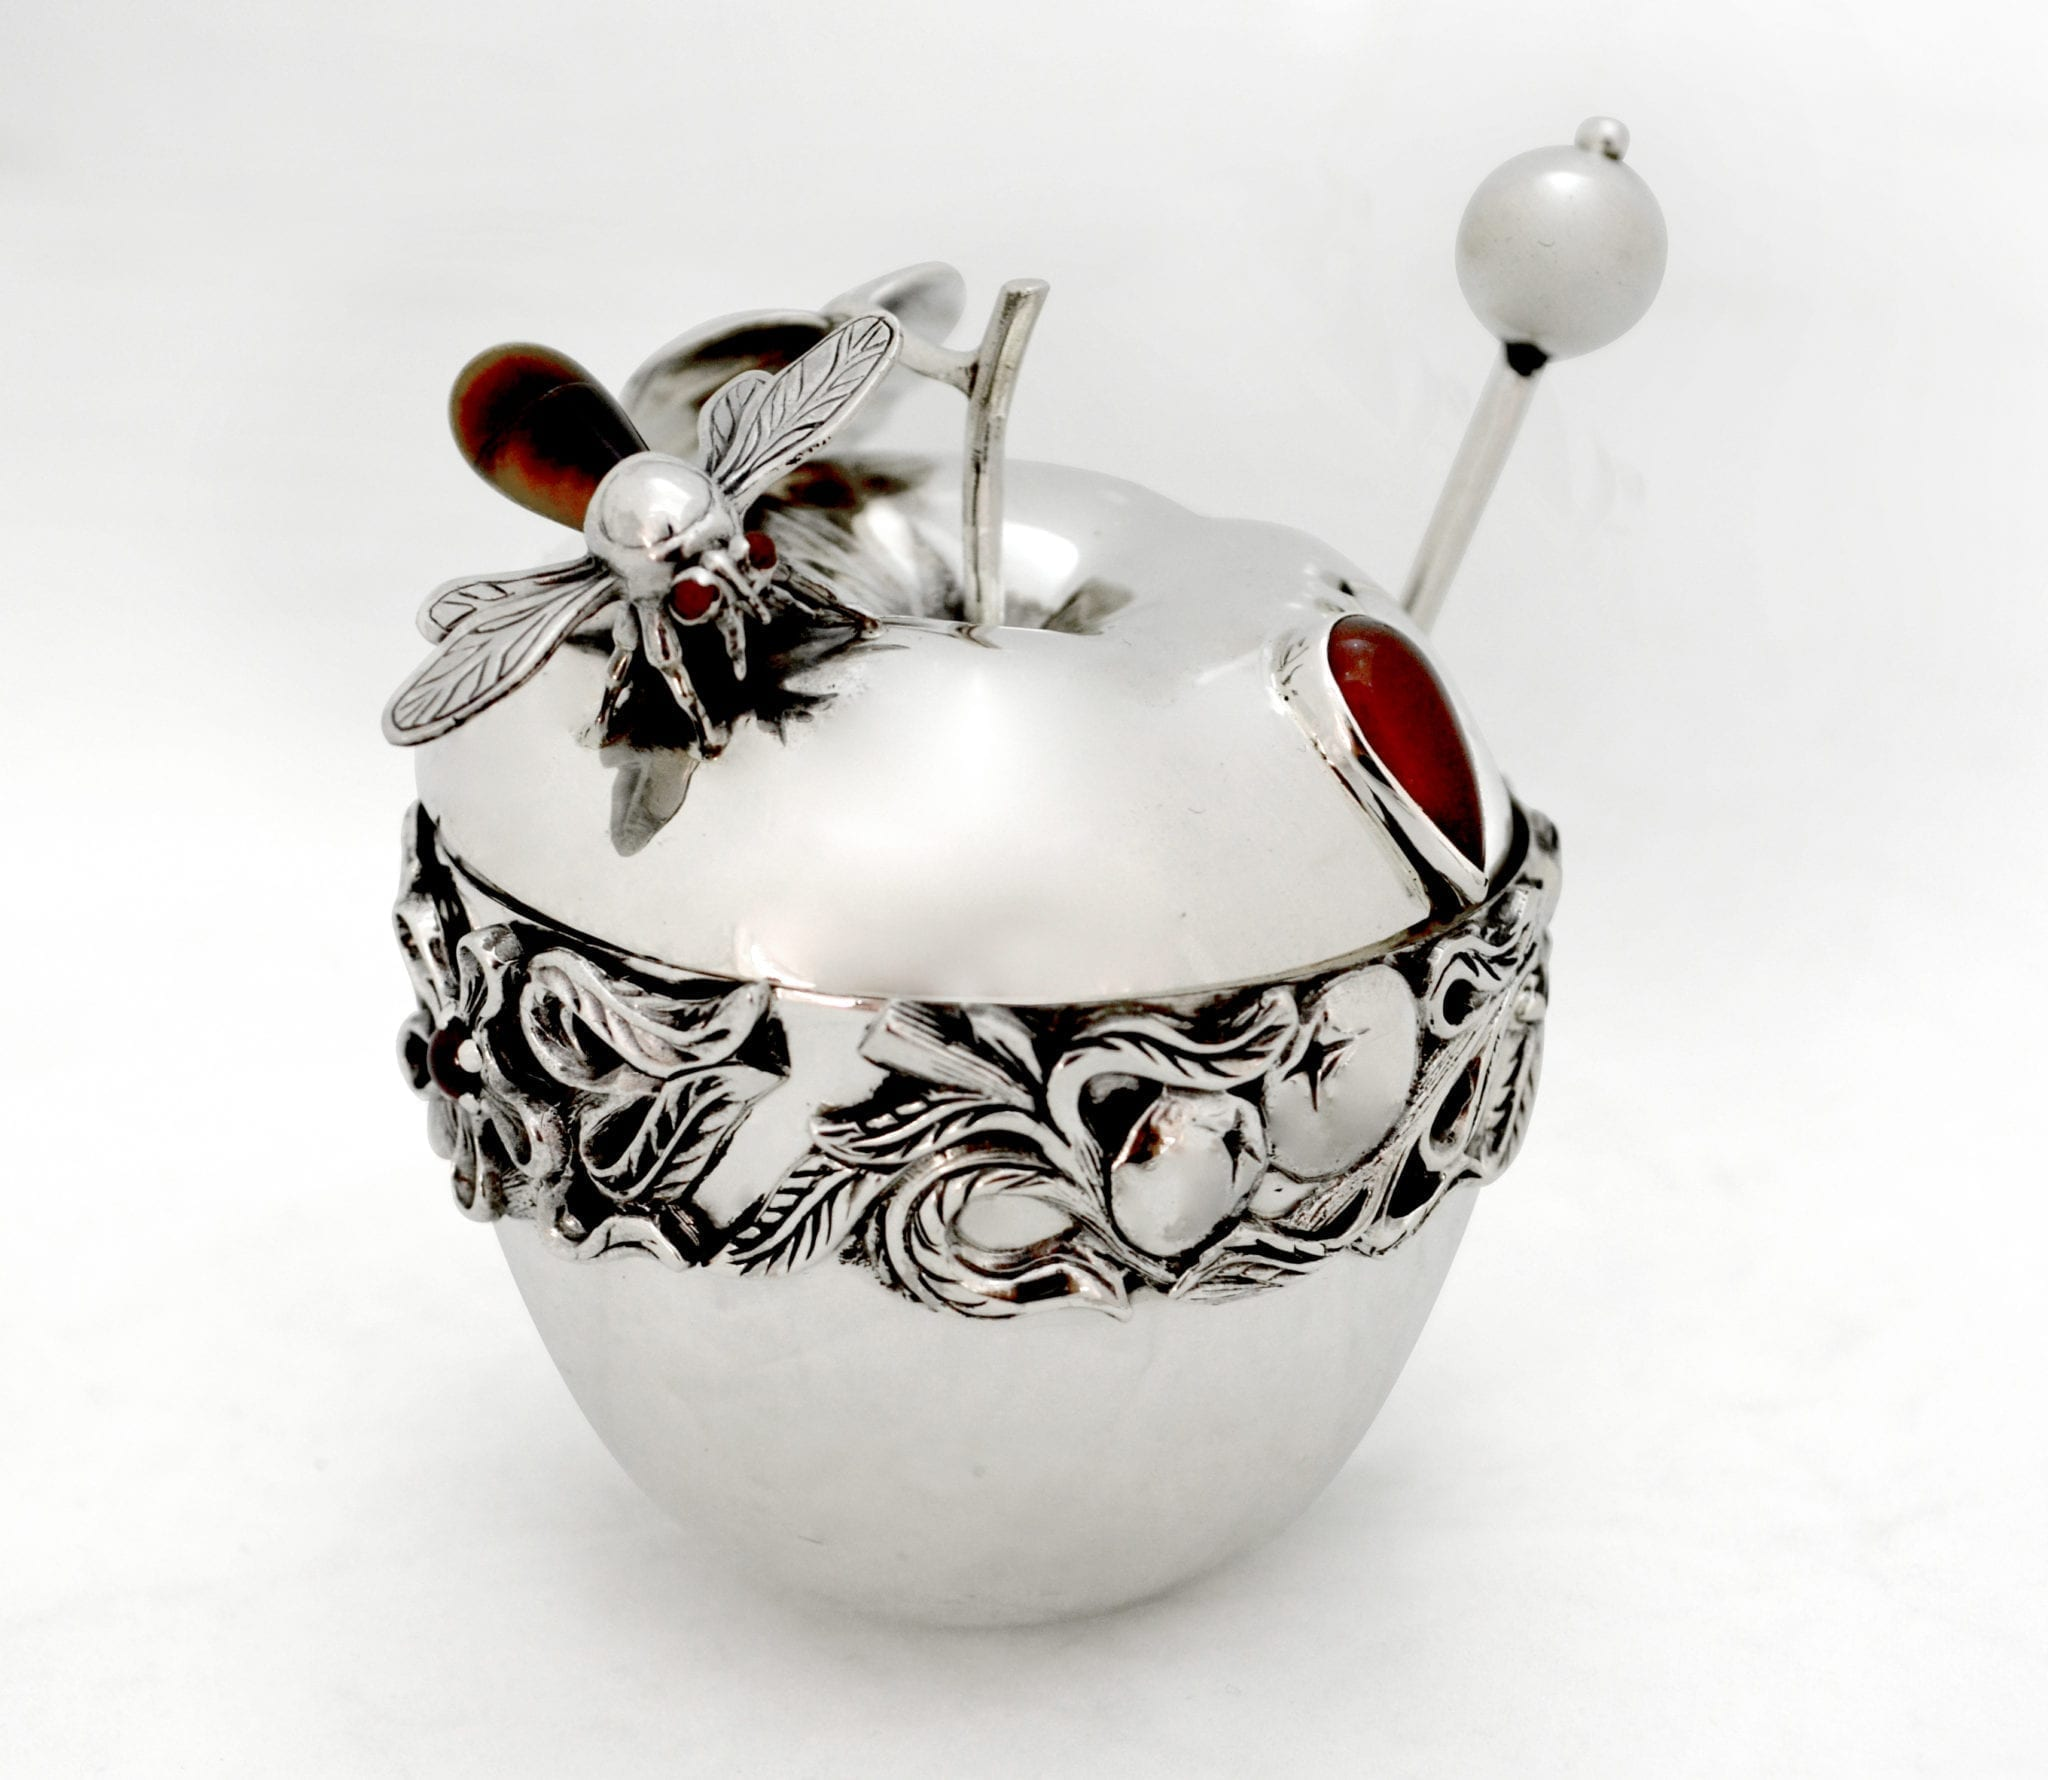 sterling silver apple honey dish, semi-precious stones, rosh hashana judaica, made in israel